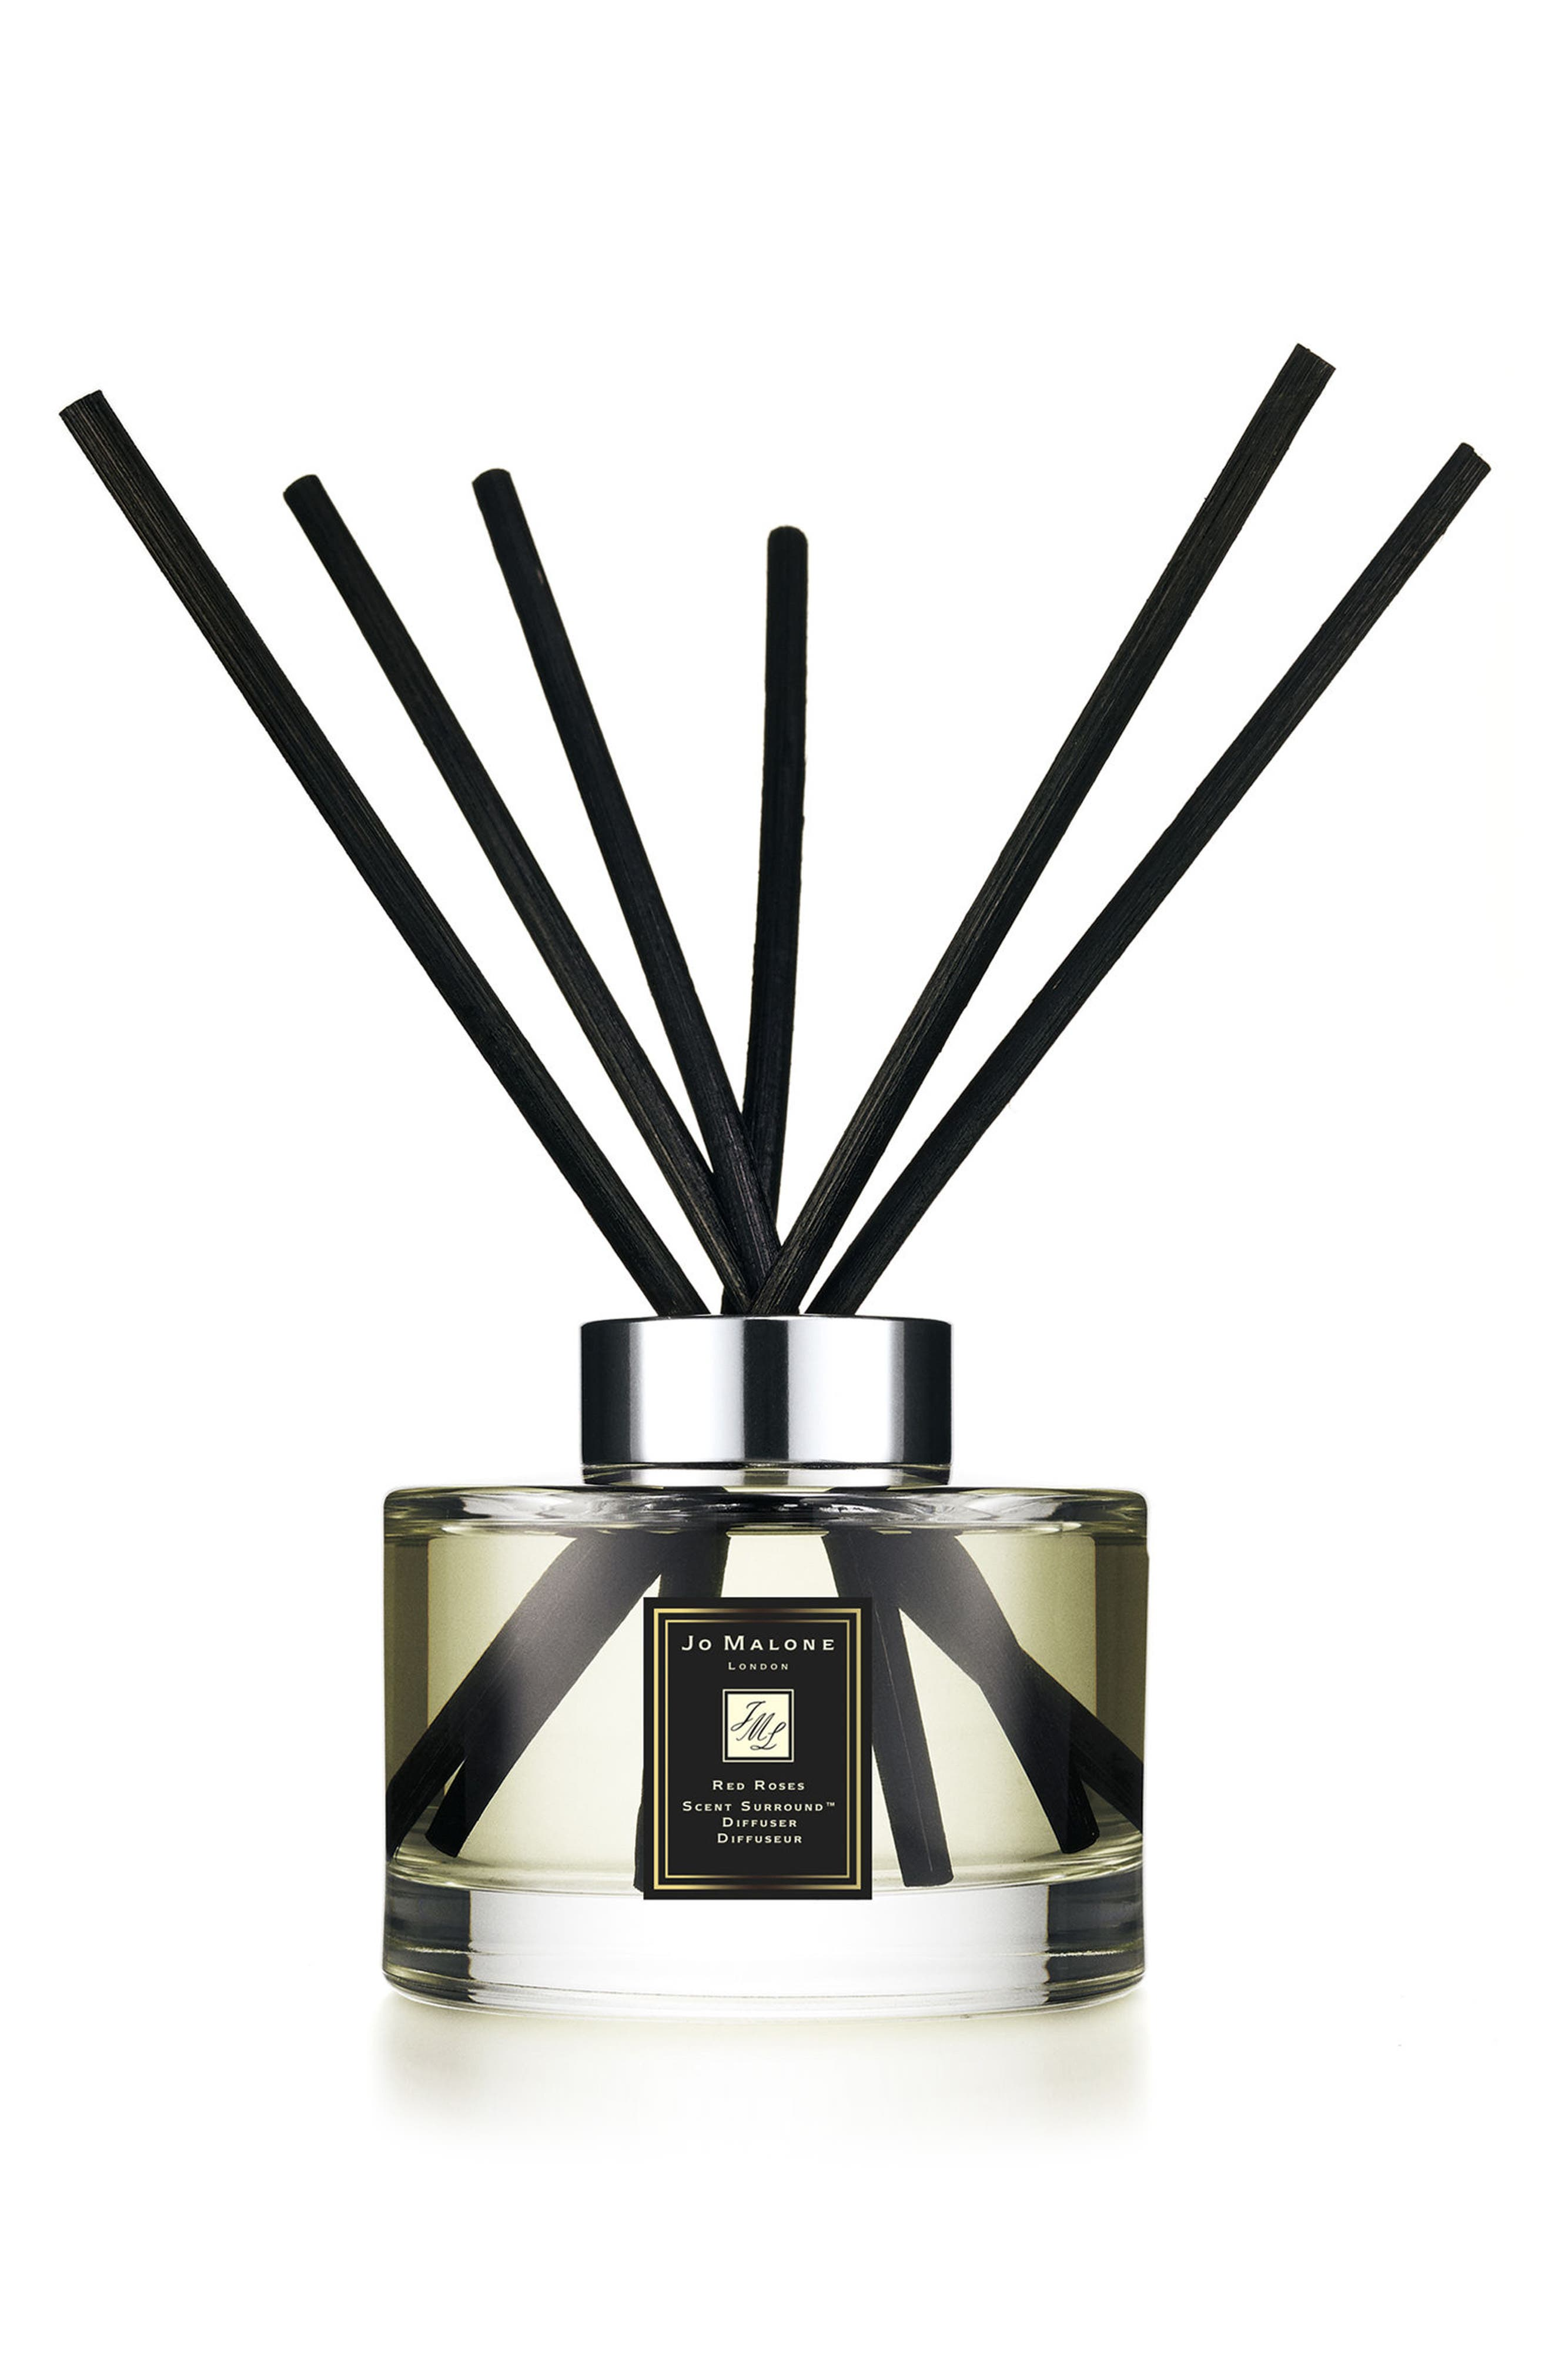 Jo Malone<sup>™</sup> Red Roses Scent Surround Diffuser,                             Main thumbnail 1, color,                             NO COLOR